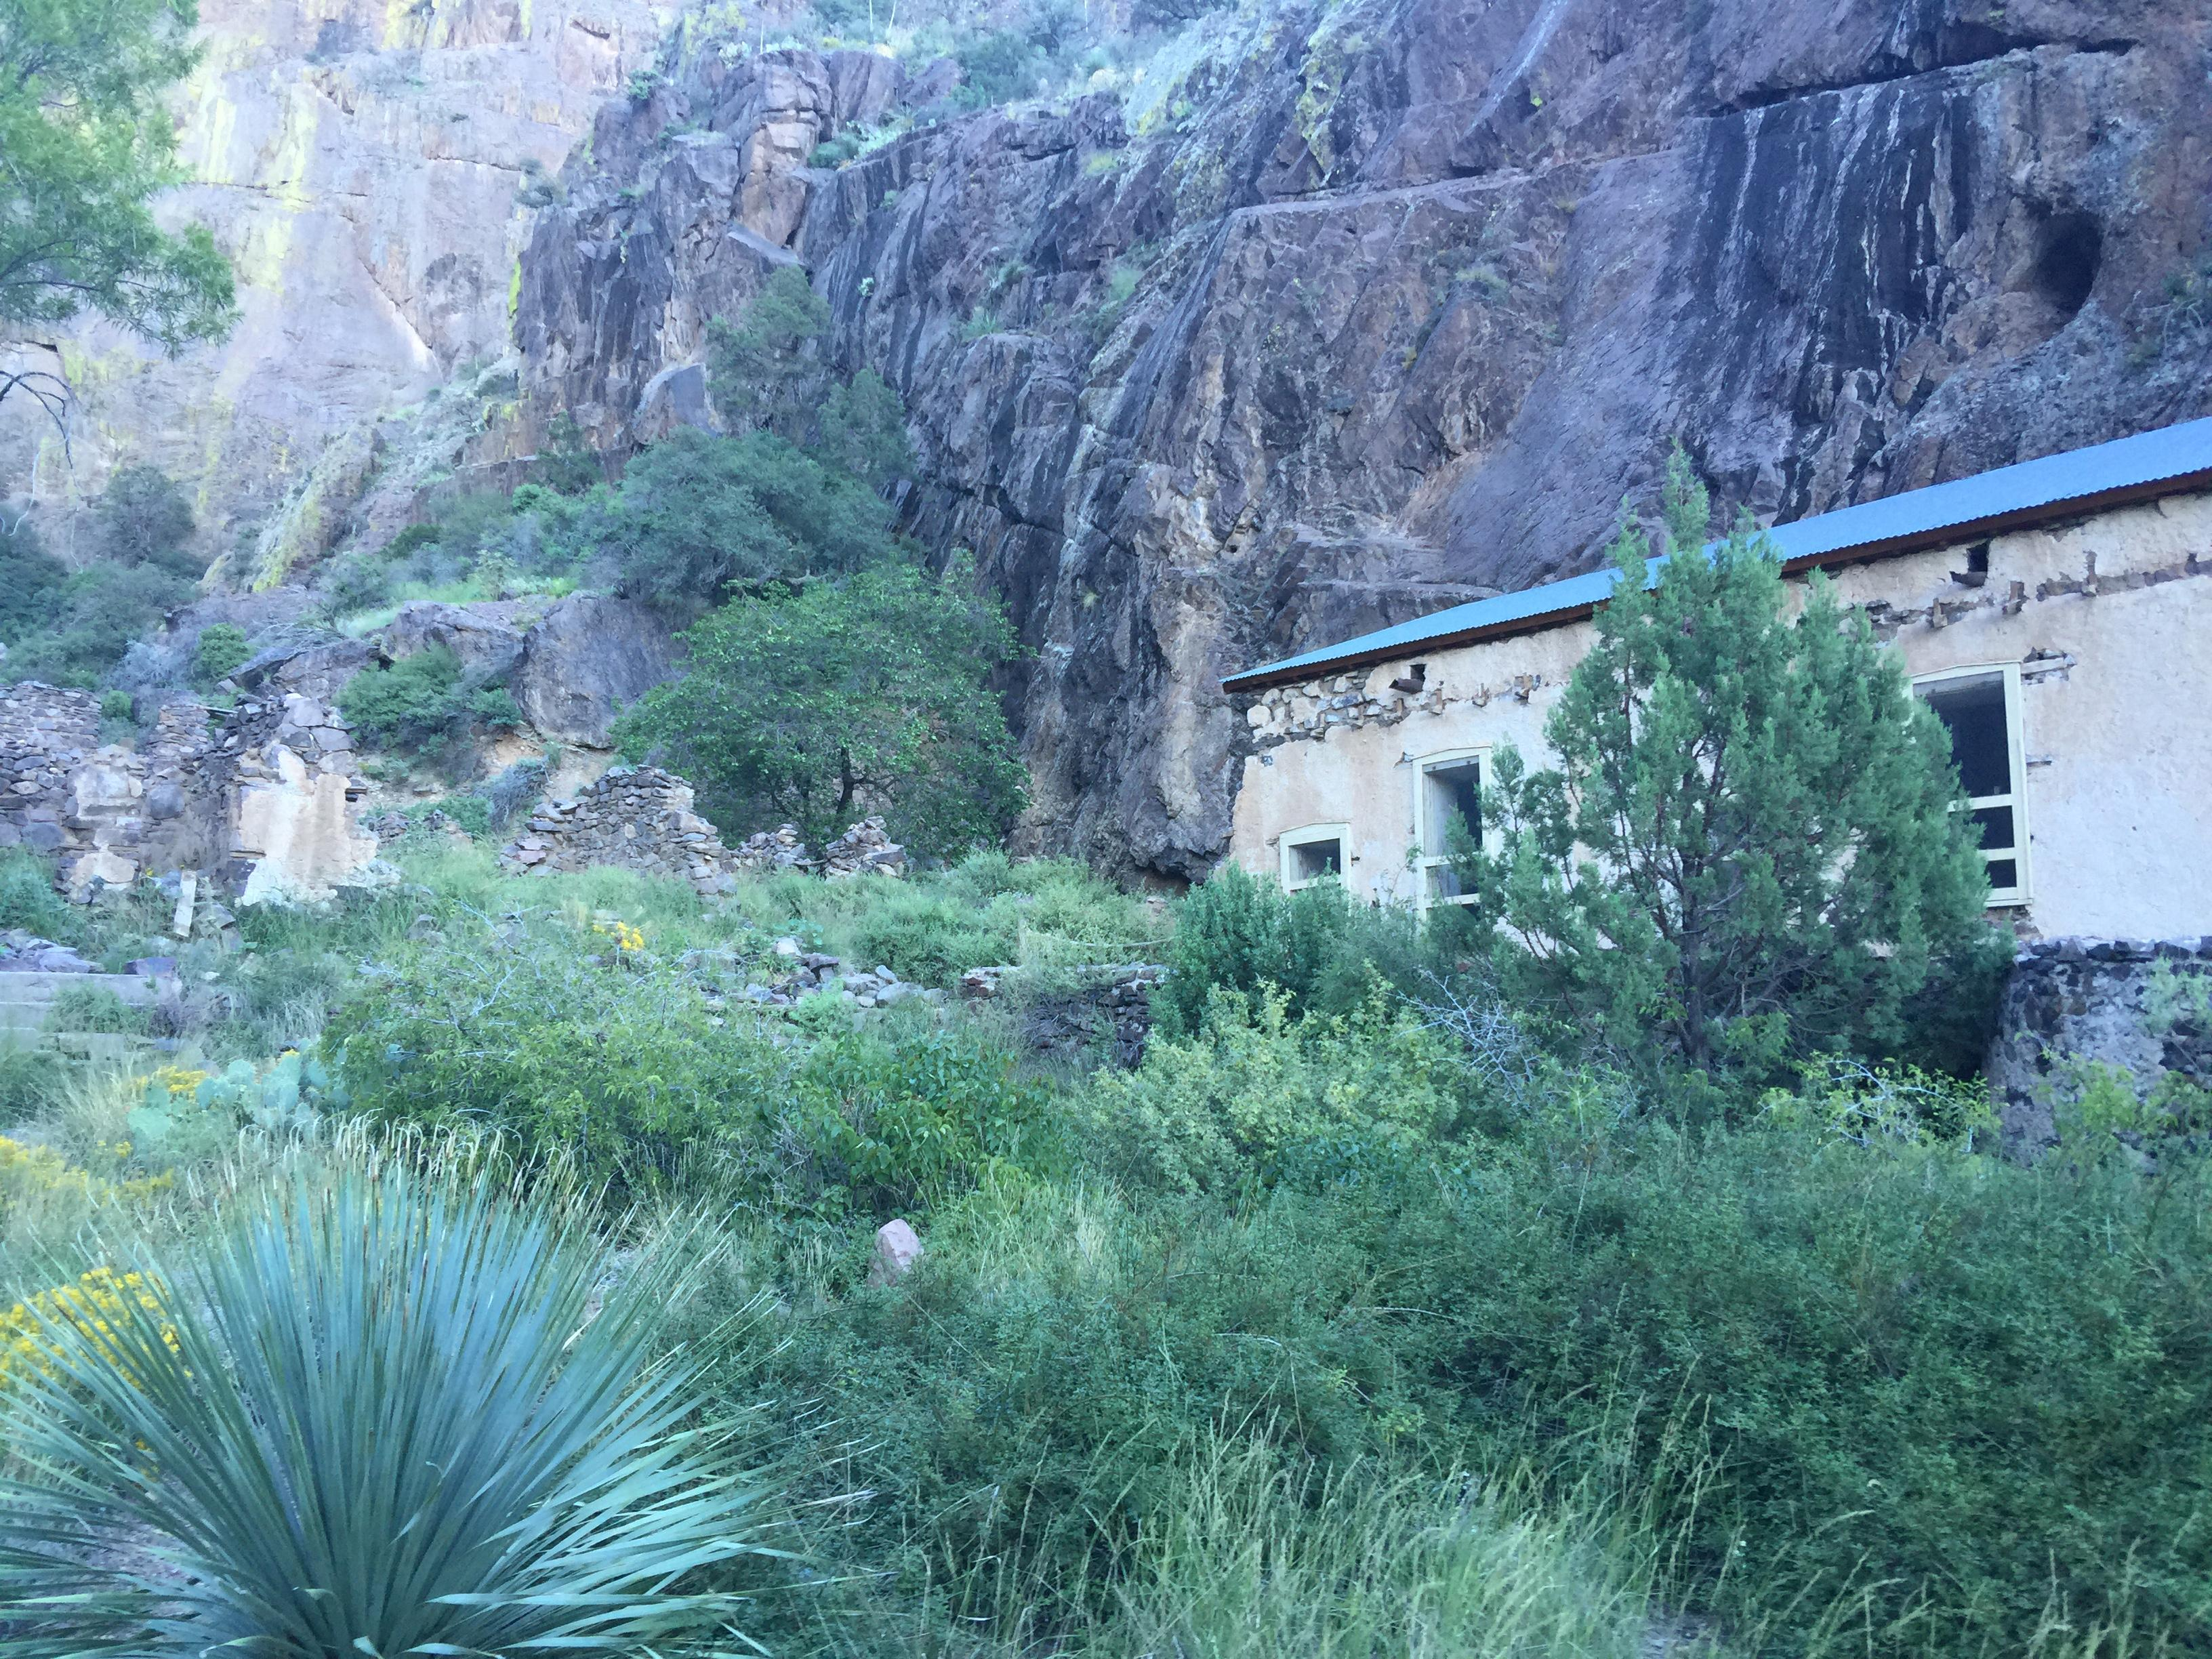 Van Patten's Mountain Camp near Dripping Springs